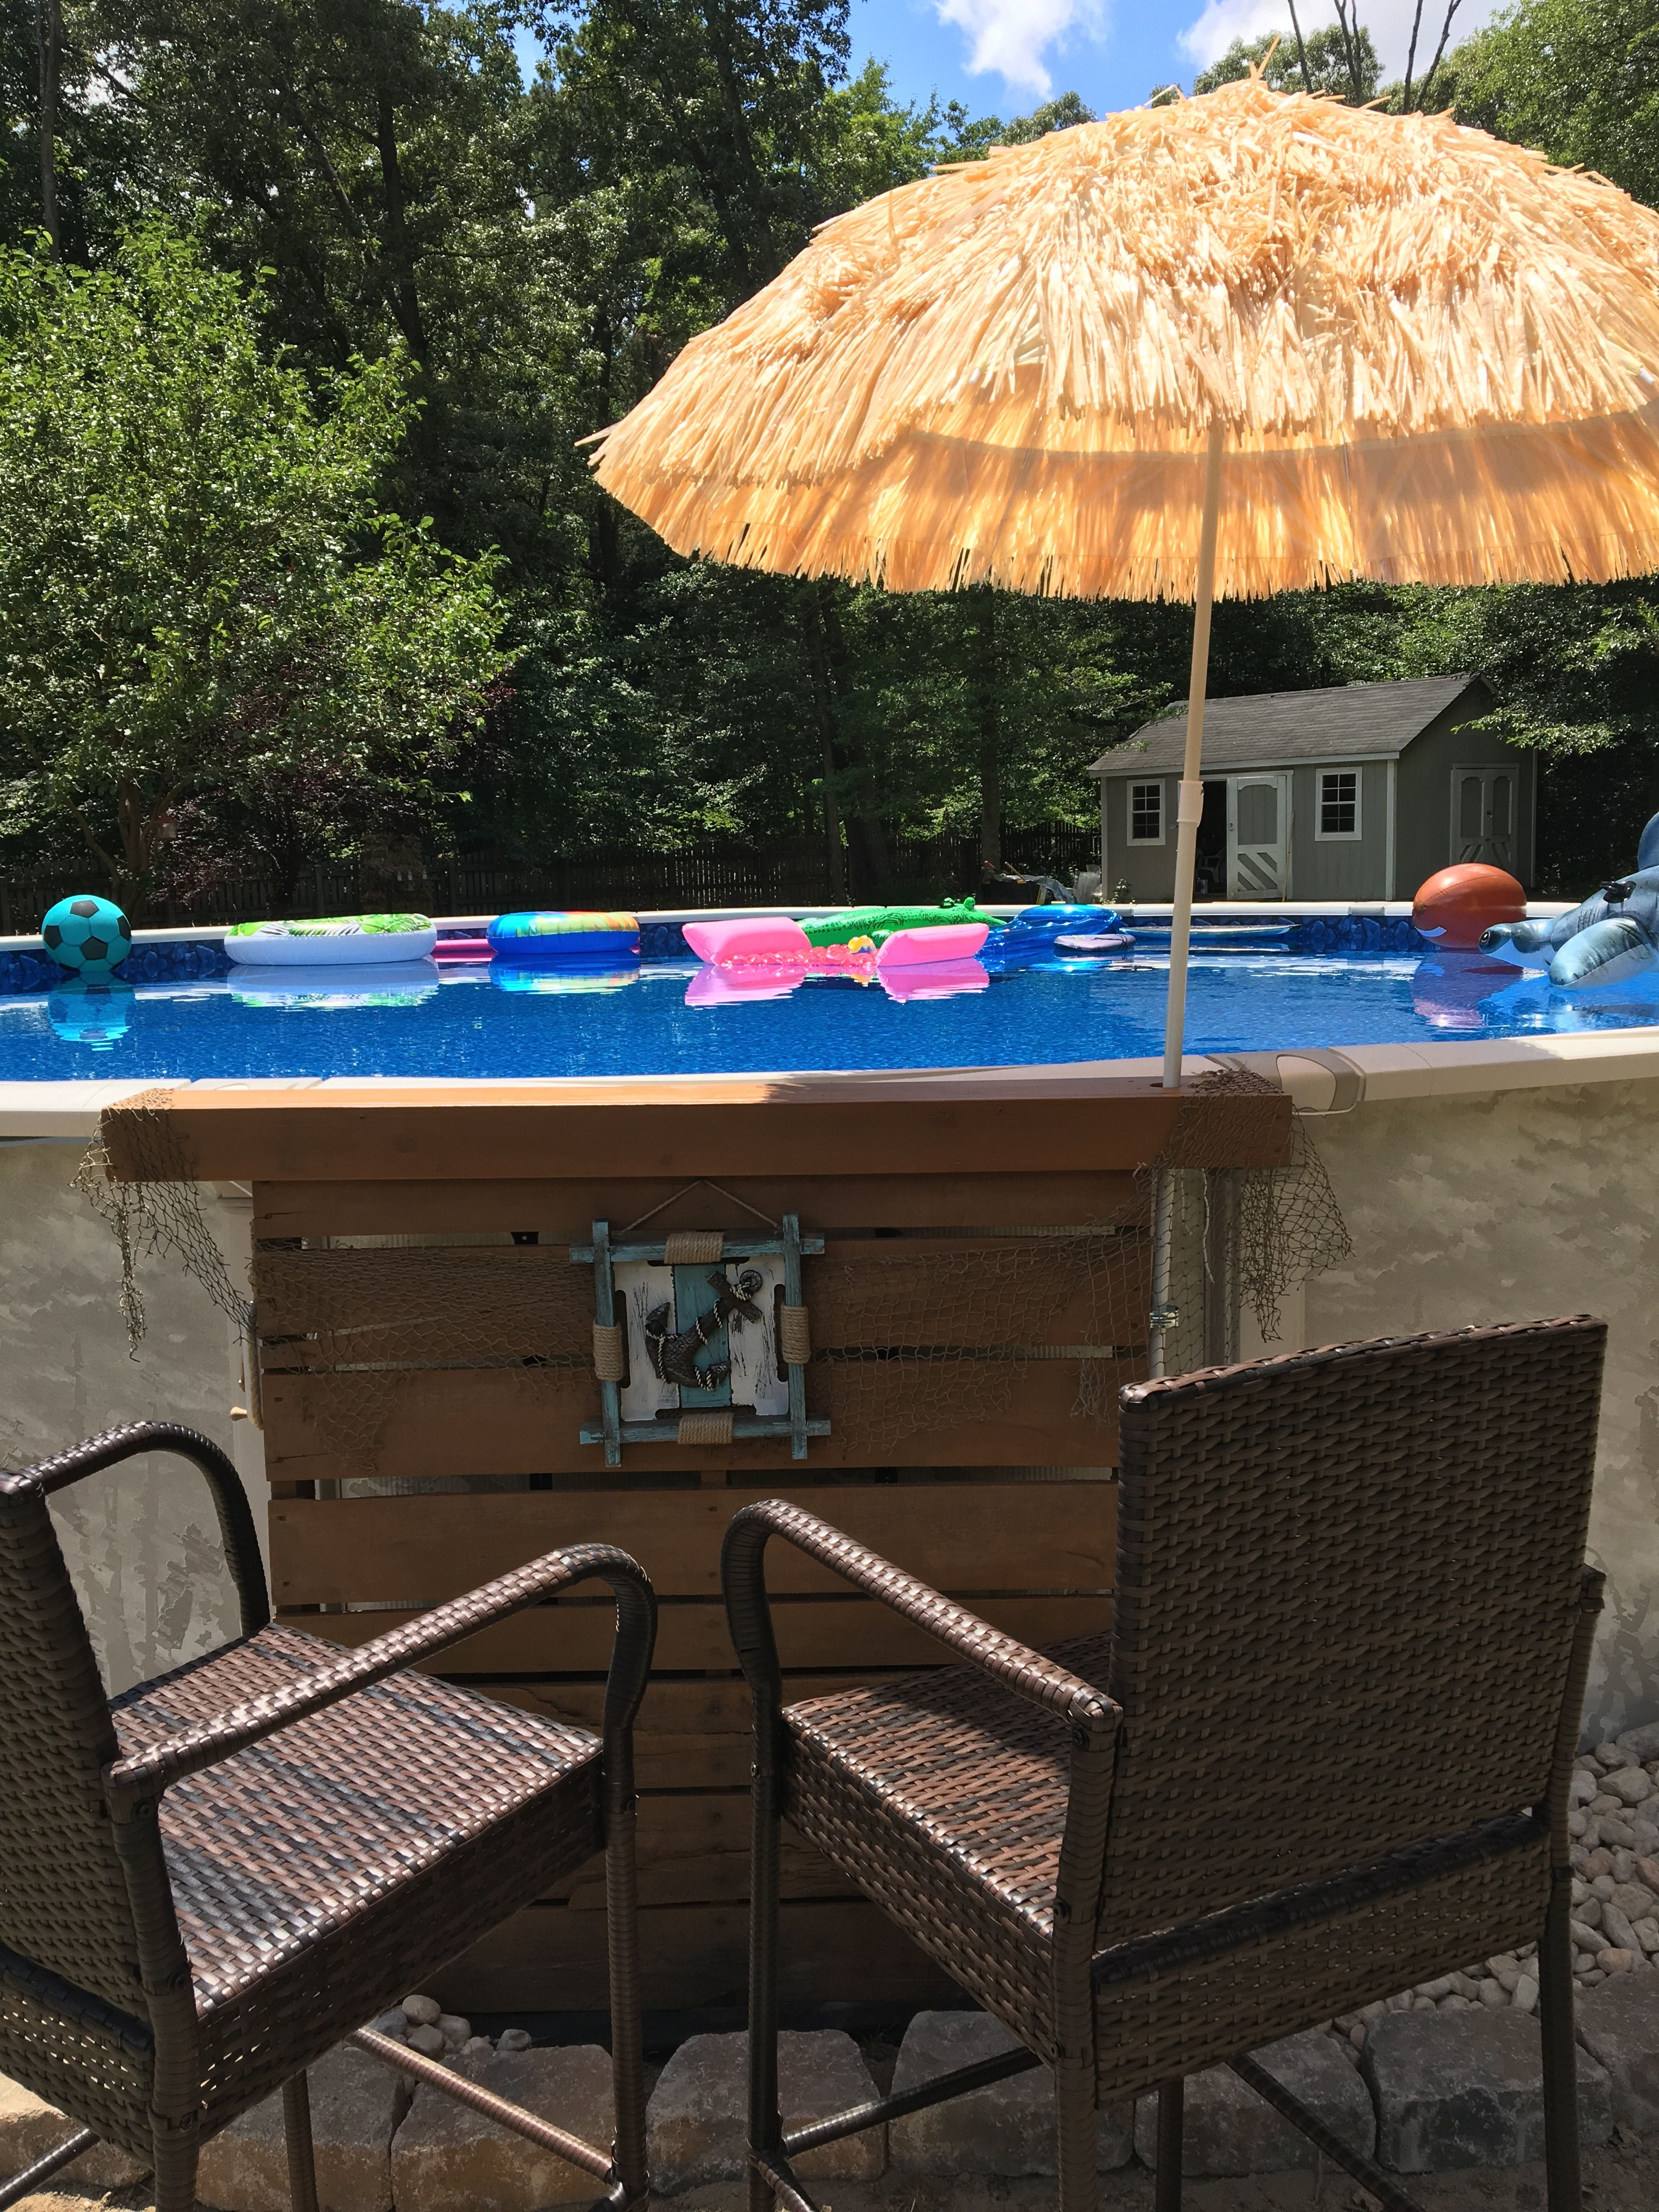 My pallet tiki bar pools pool party in 2019 pool bar - Above ground pool bar ...